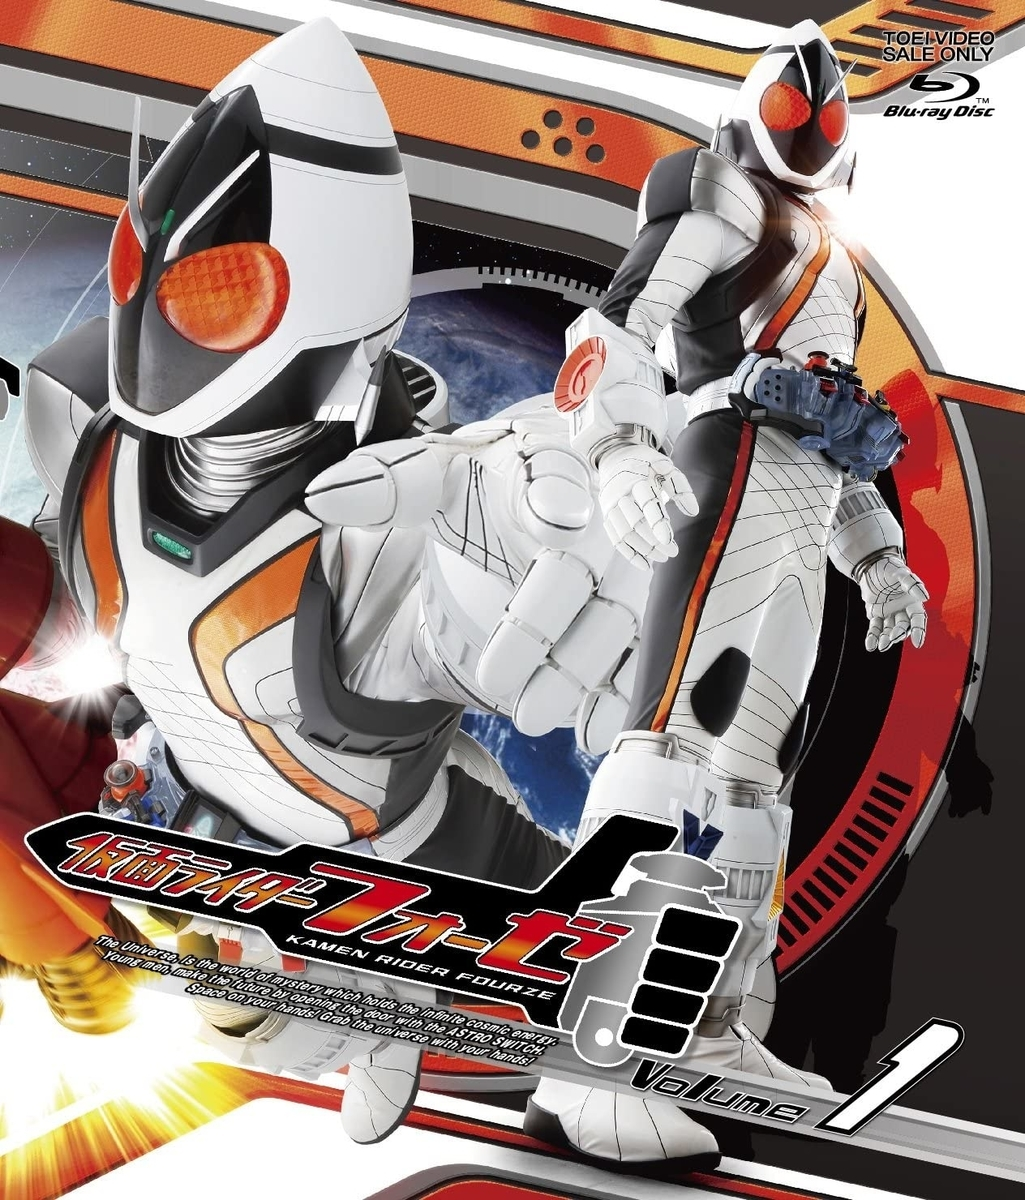 『仮面ライダーフォーゼ VOL.1』Blu-ray、 TOEI COMPANY,LTD.(TOE)(D)、2012年